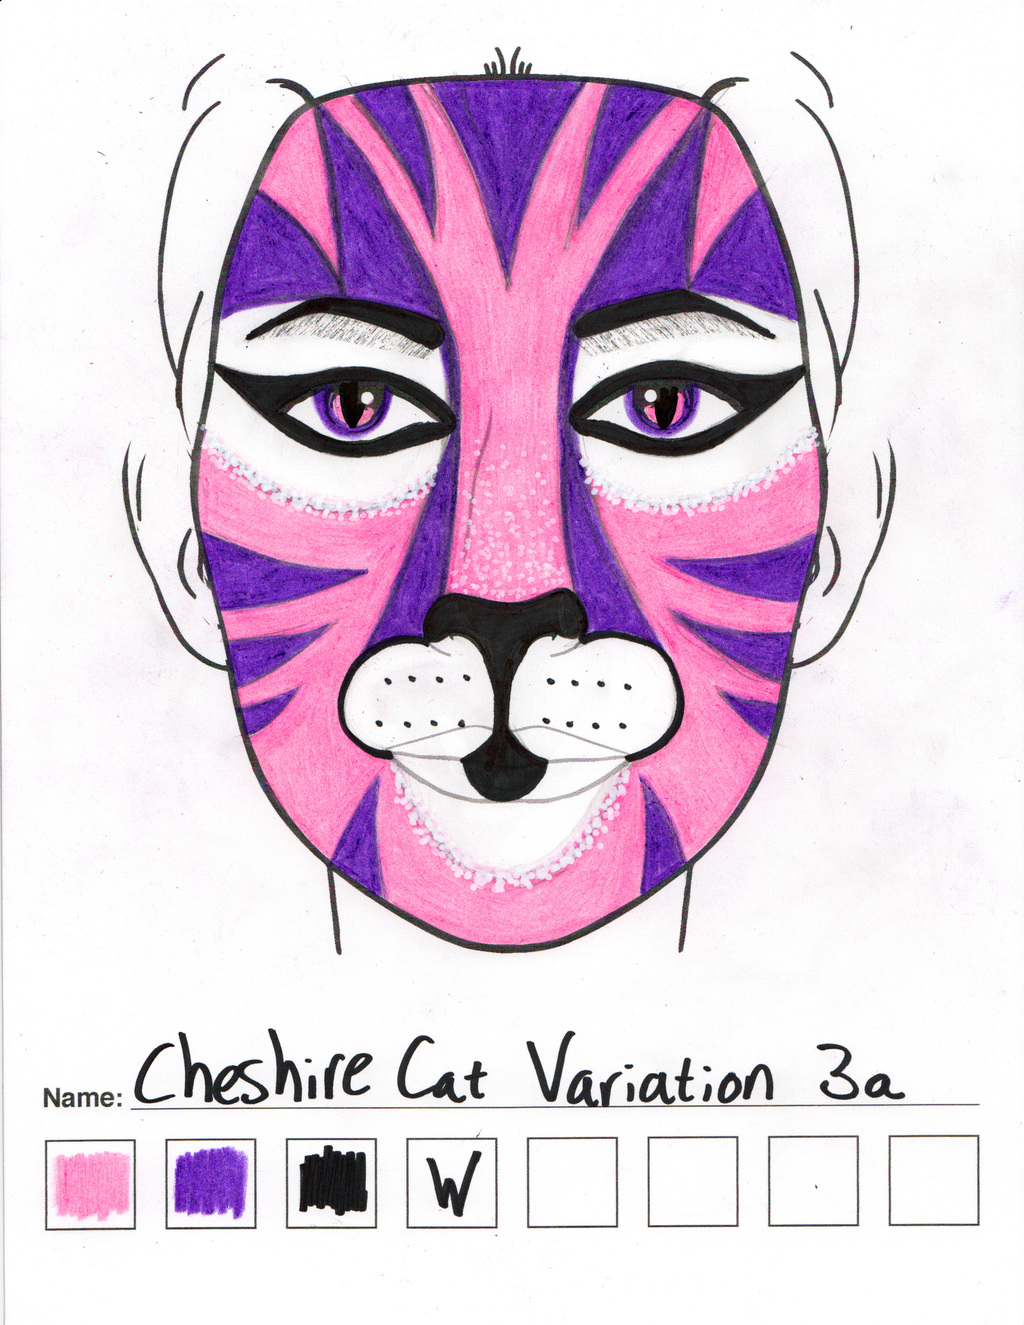 Cheshire Cat Variation 3a makeup sketch